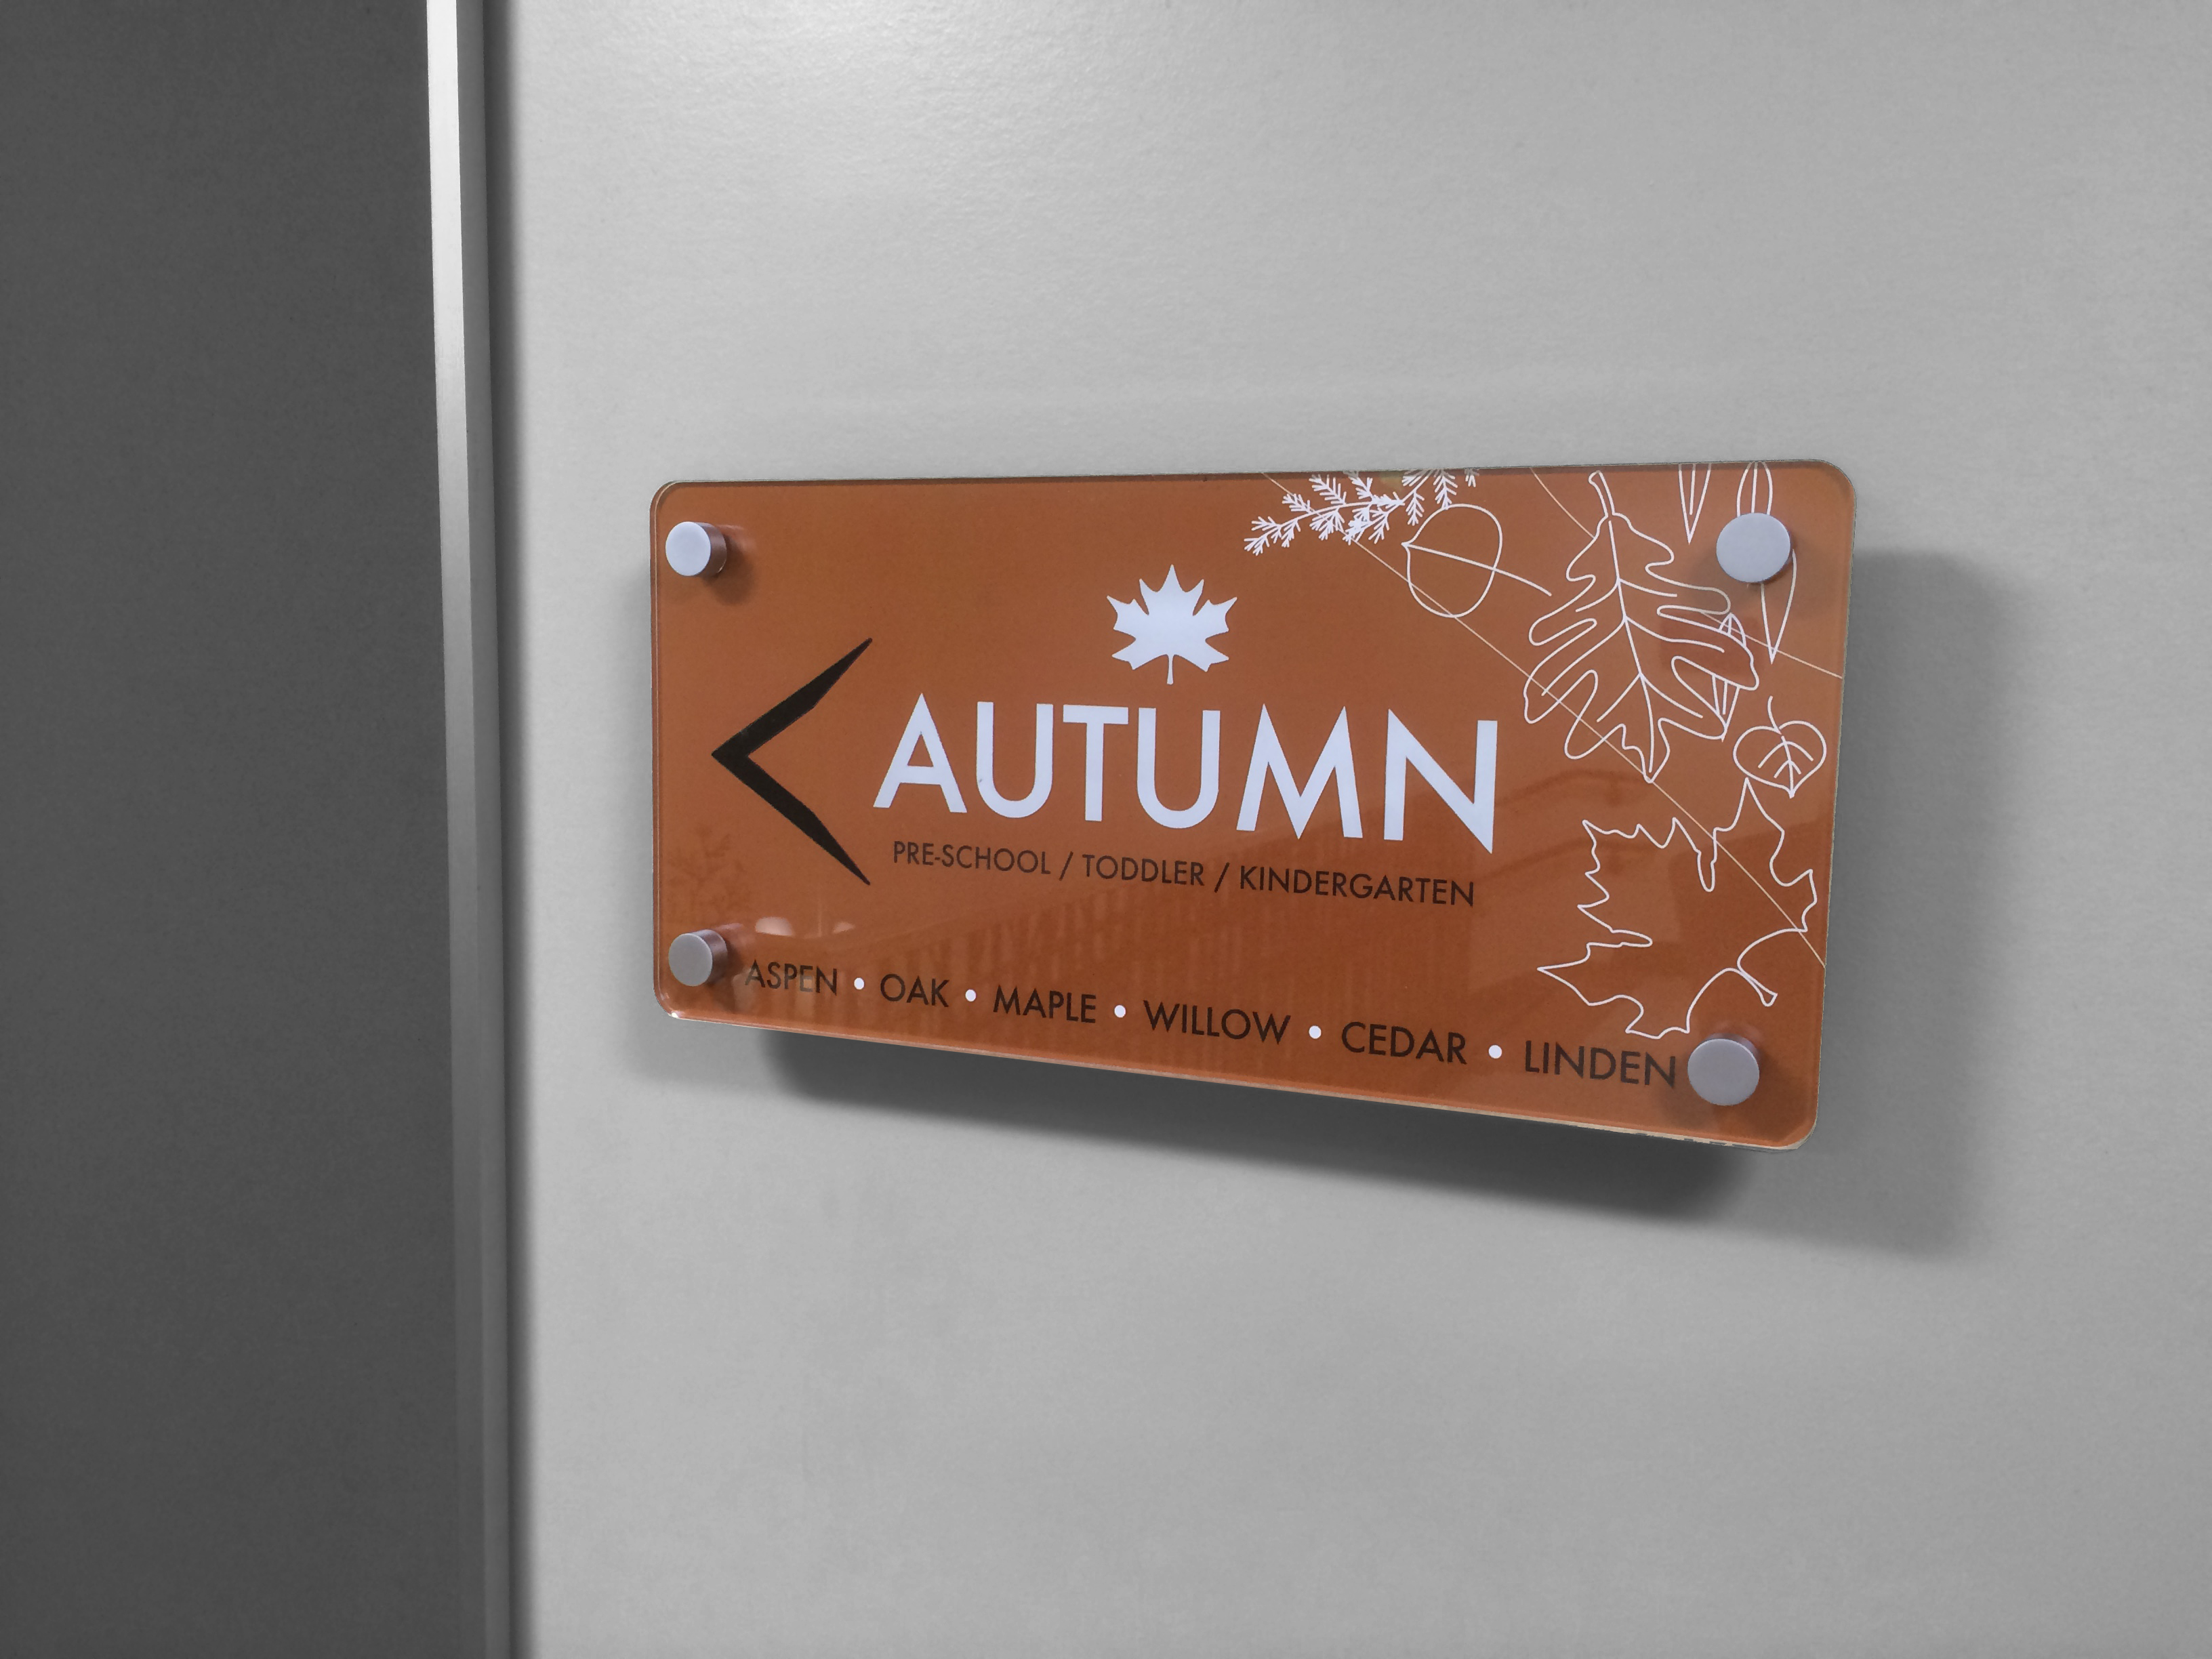 Interior Signage - Autumn Wing